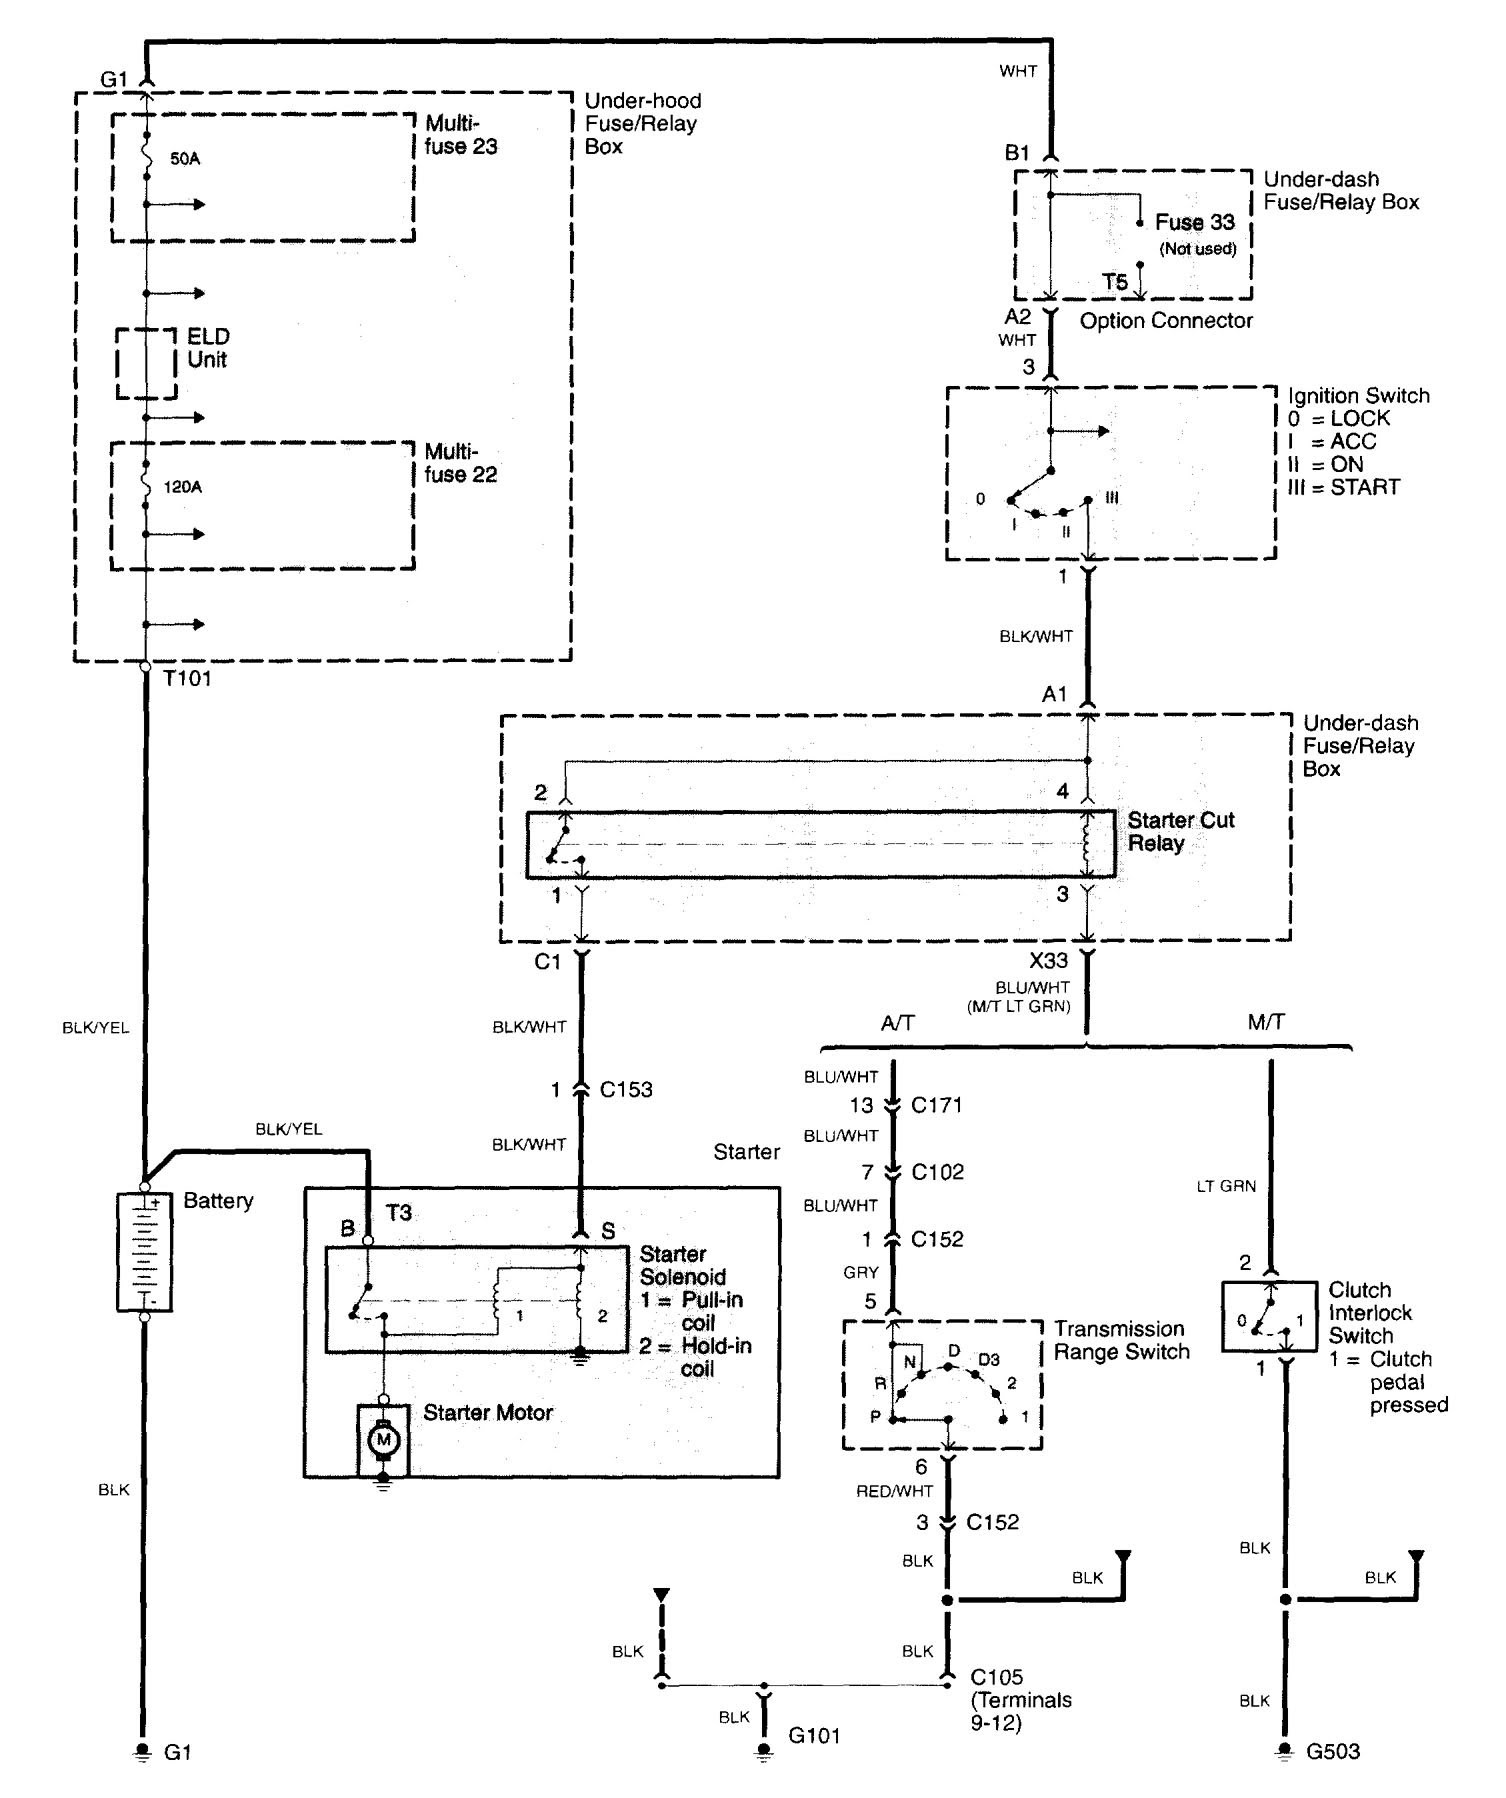 Diagram 2000 Acura Tl Wiring Diagram Full Version Hd Quality Wiring Diagram Scamdiagram2a Clubexcalibur It